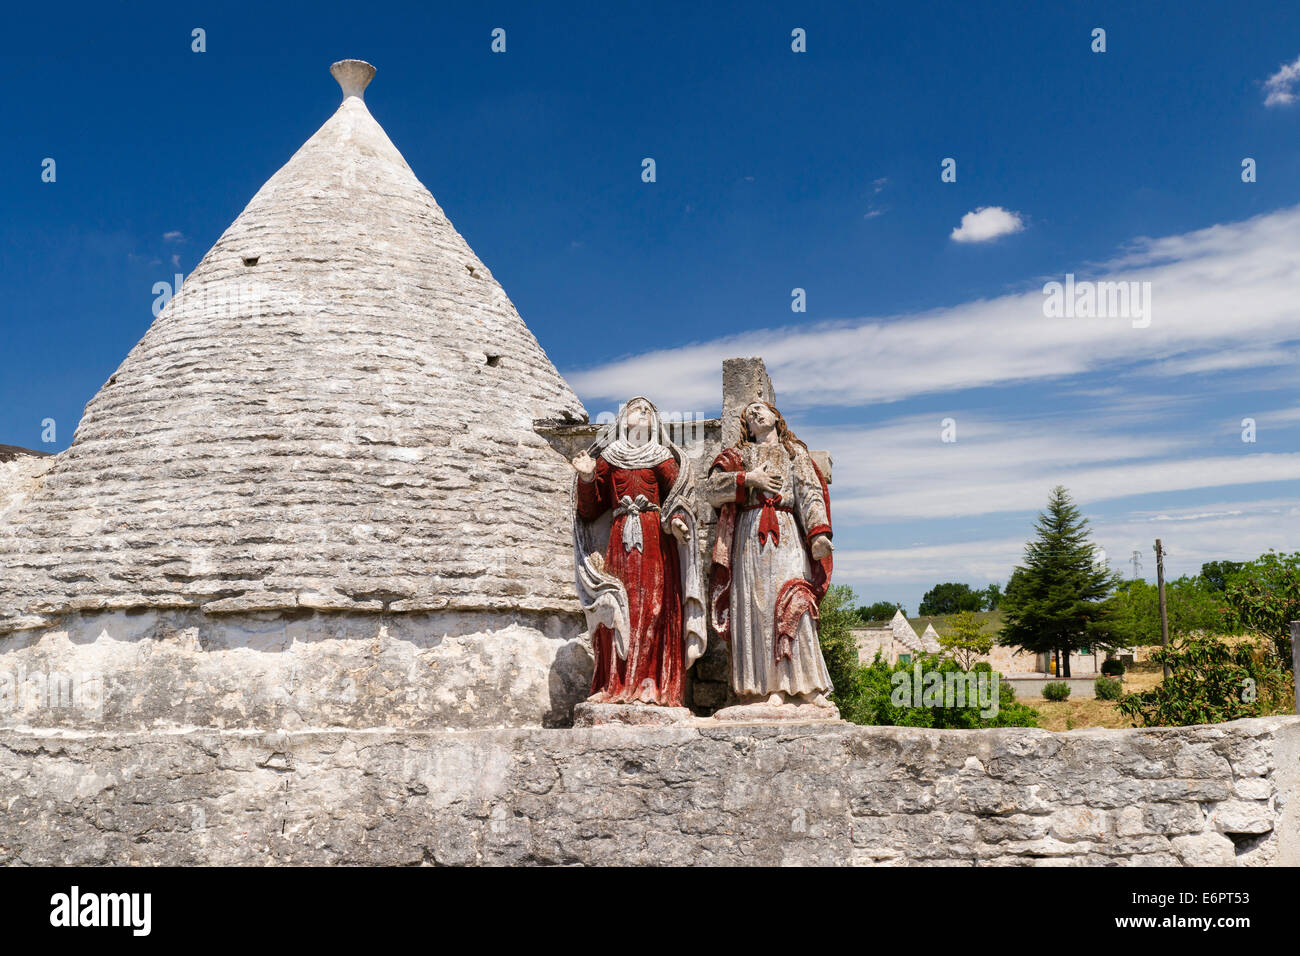 Saints, religious piety, Trullo, traditional round cone house, in Martina Franca, Valle d'Itria, Trulli Valley, Stock Photo